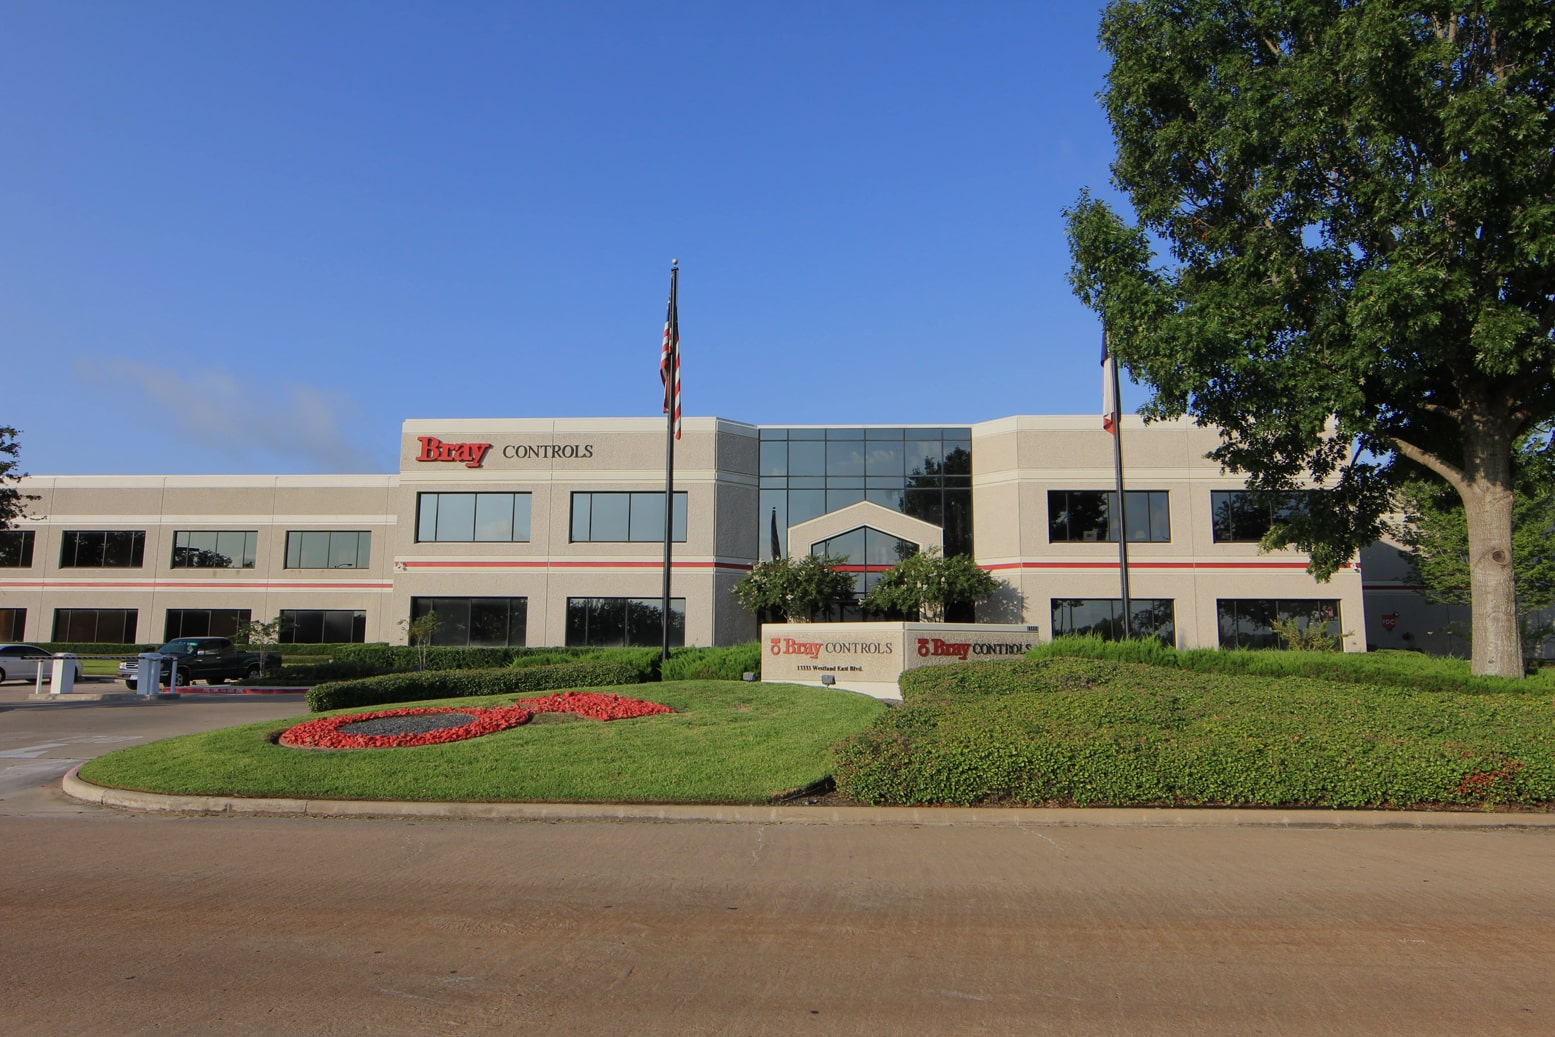 Fachada da sede da Bray Controls - Bray International em Houston